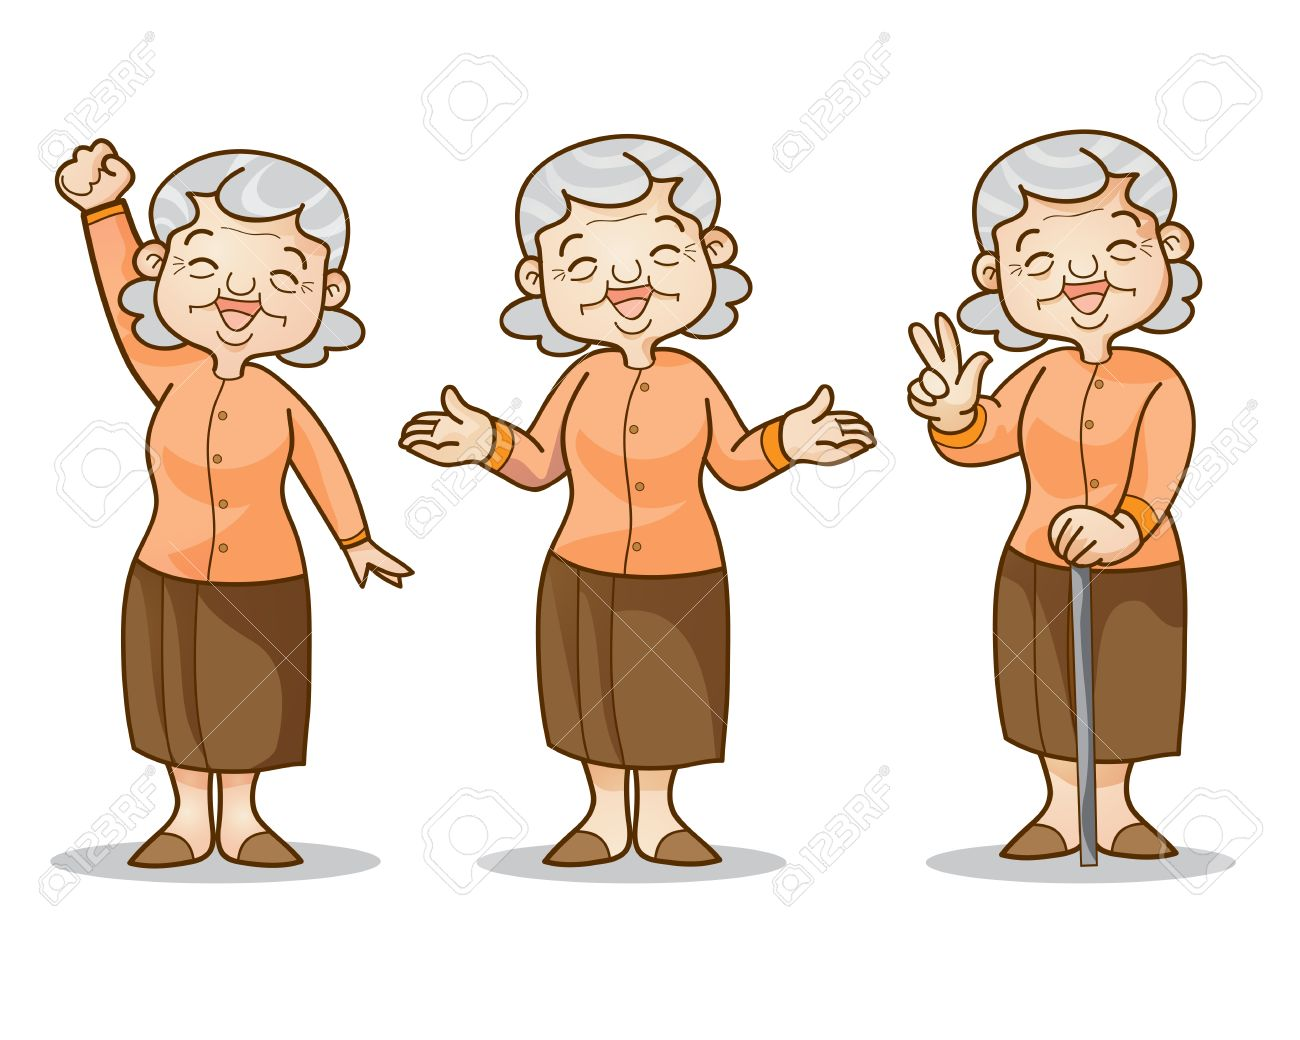 funny illustration of old woman cartoon character set isolated rh 123rf com old lady cartoon character meme old lady cartoon character with tissues